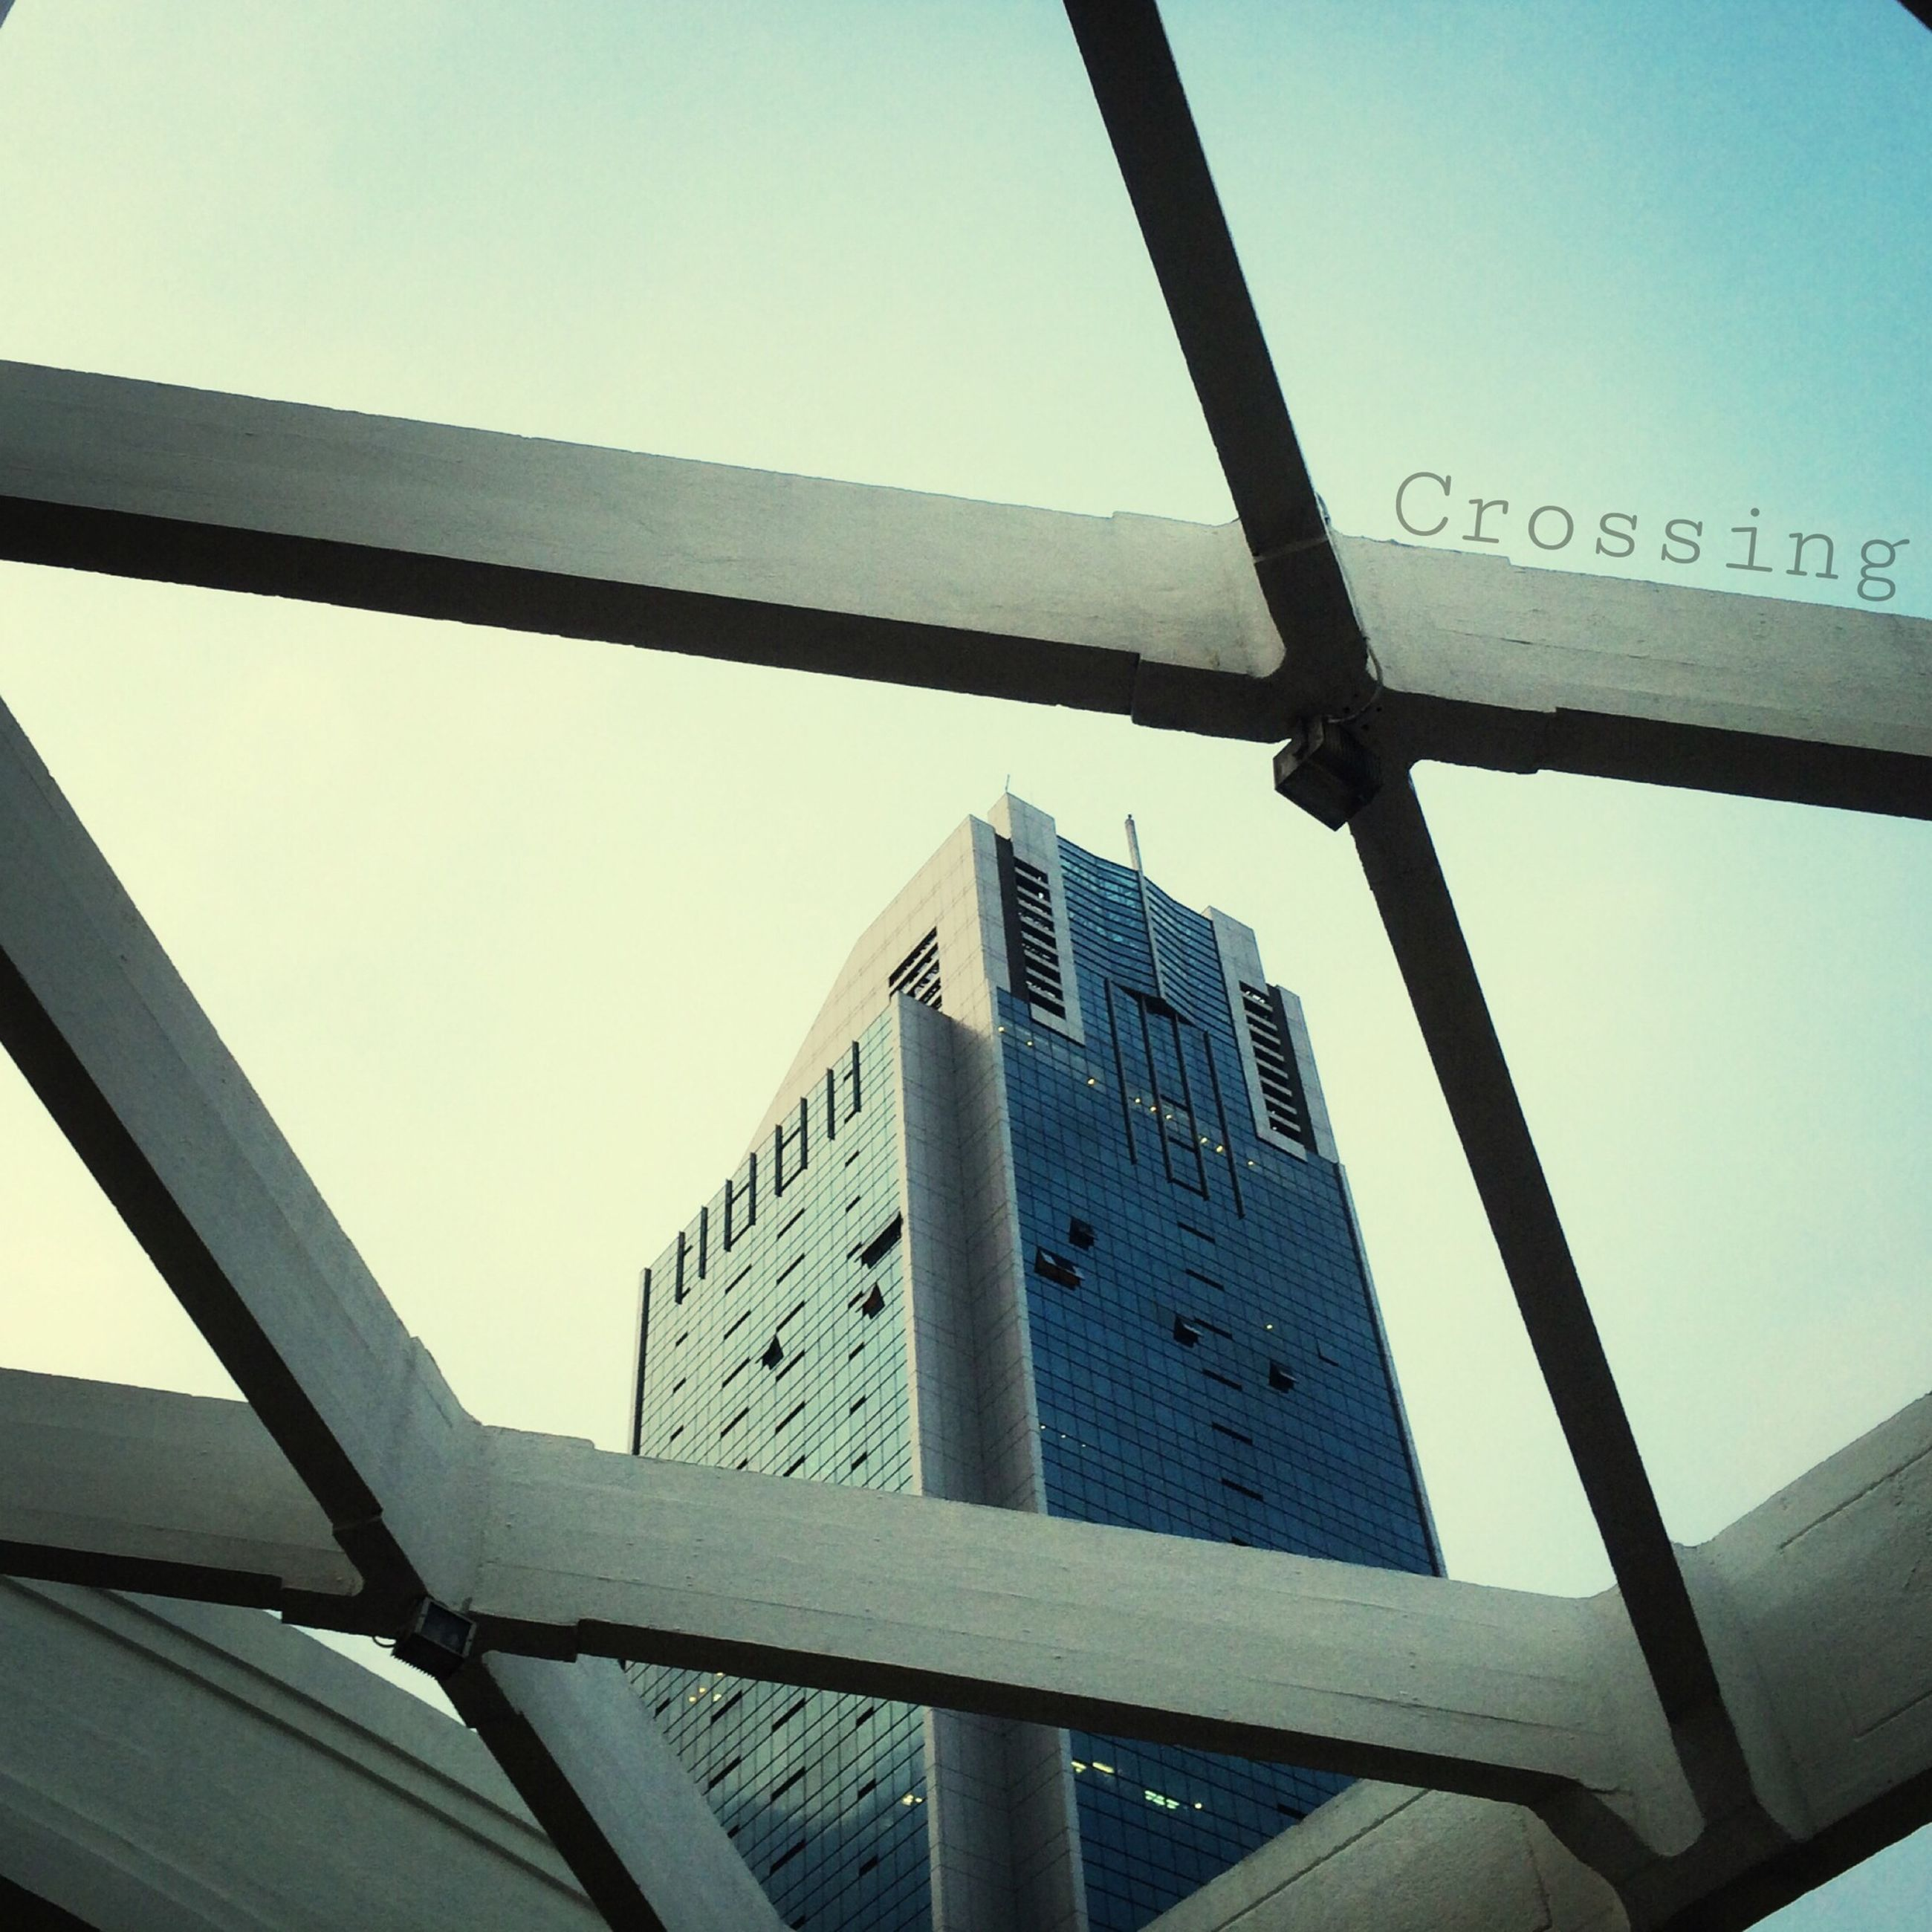 architecture, built structure, low angle view, building exterior, clear sky, city, skyscraper, tall - high, tower, modern, sky, connection, office building, bridge - man made structure, glass - material, engineering, capital cities, development, travel destinations, day